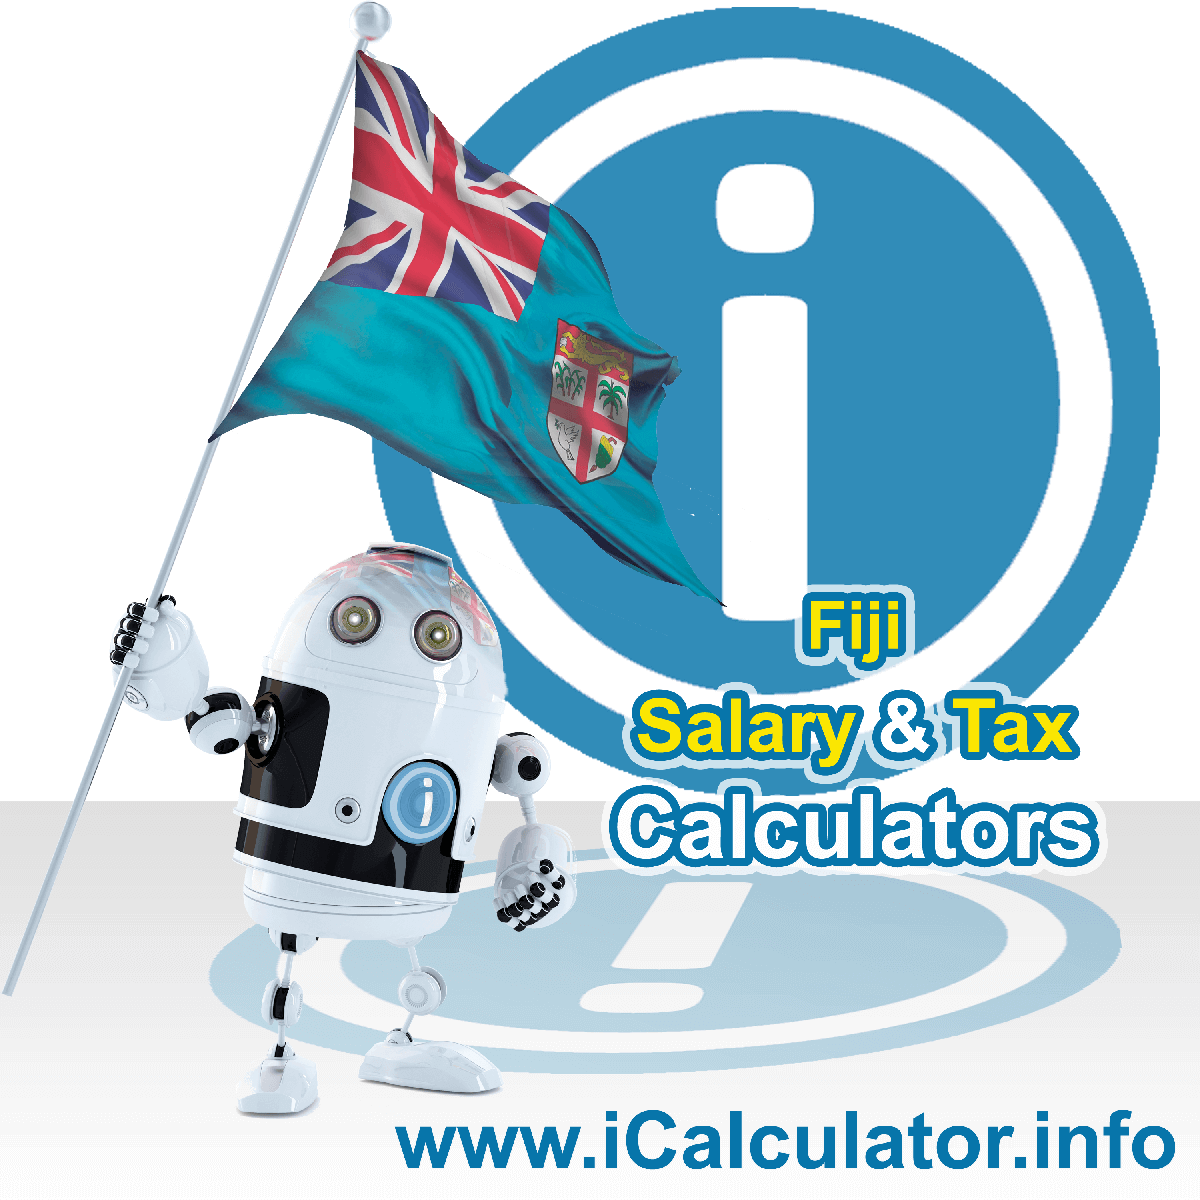 Fiji Tax Calculator. This image shows the Fiji flag and information relating to the tax formula for the Fiji Salary Calculator